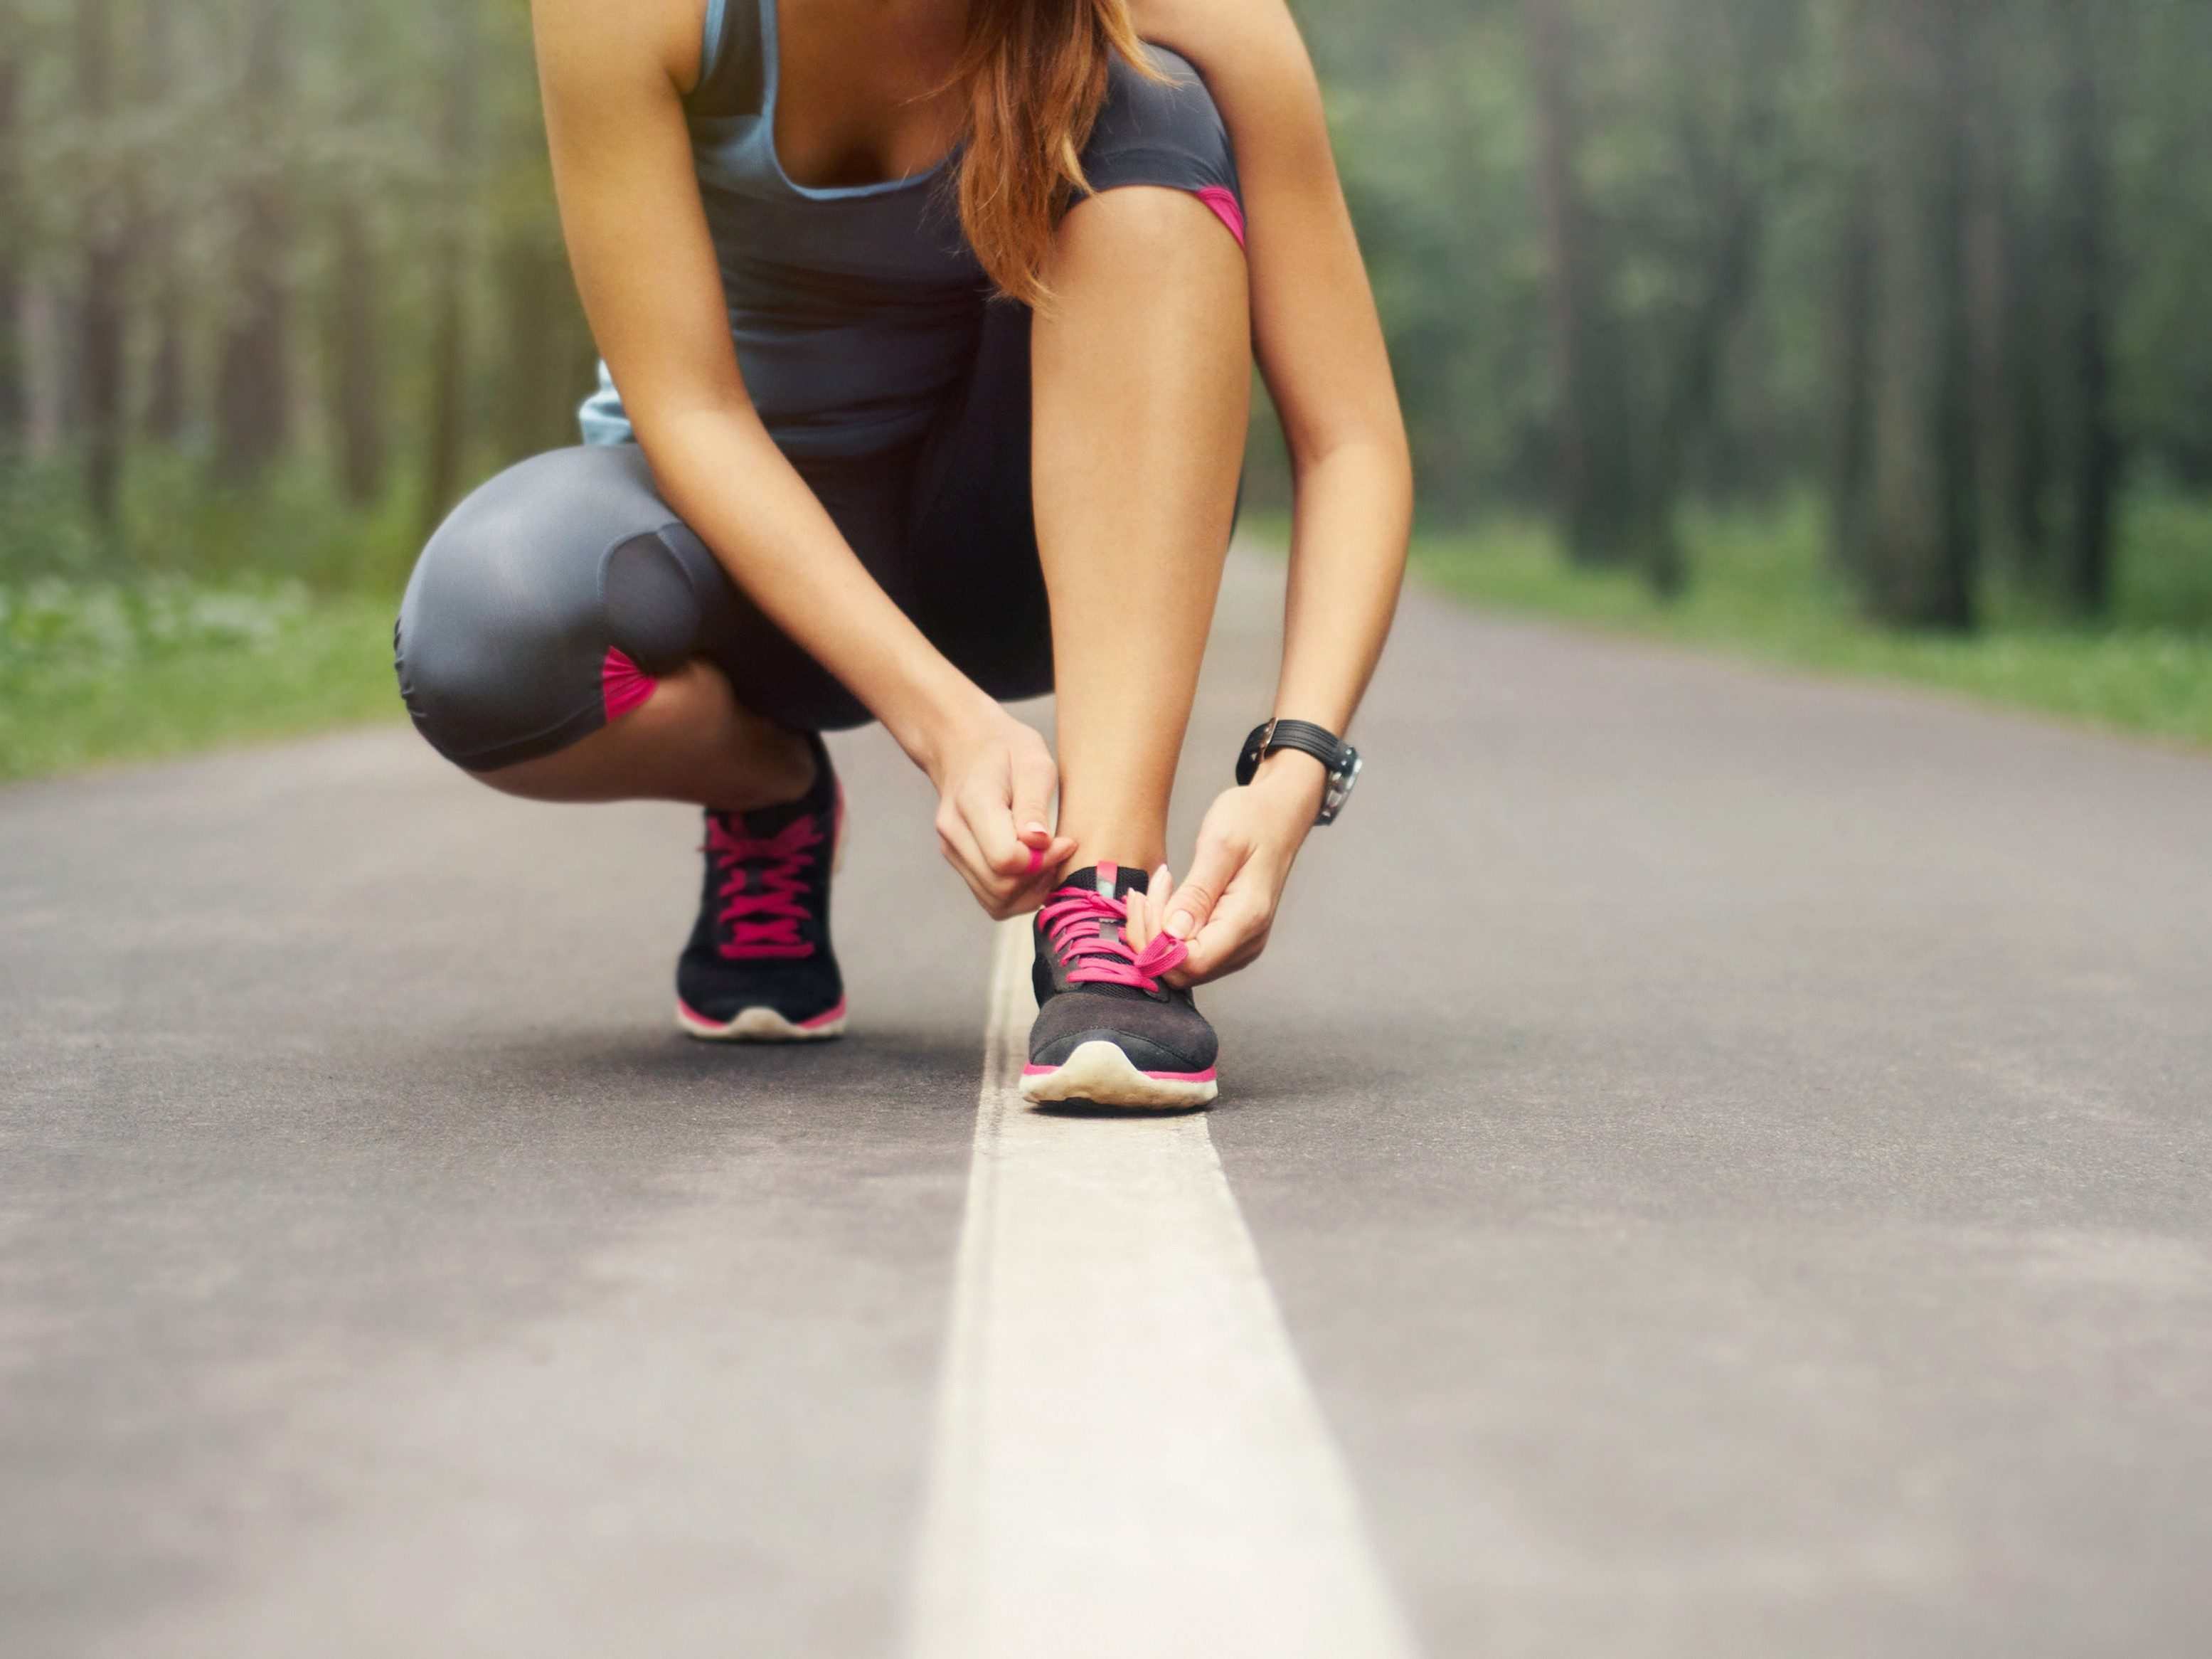 Exercise to prevent stress-a known trigger for shingles.